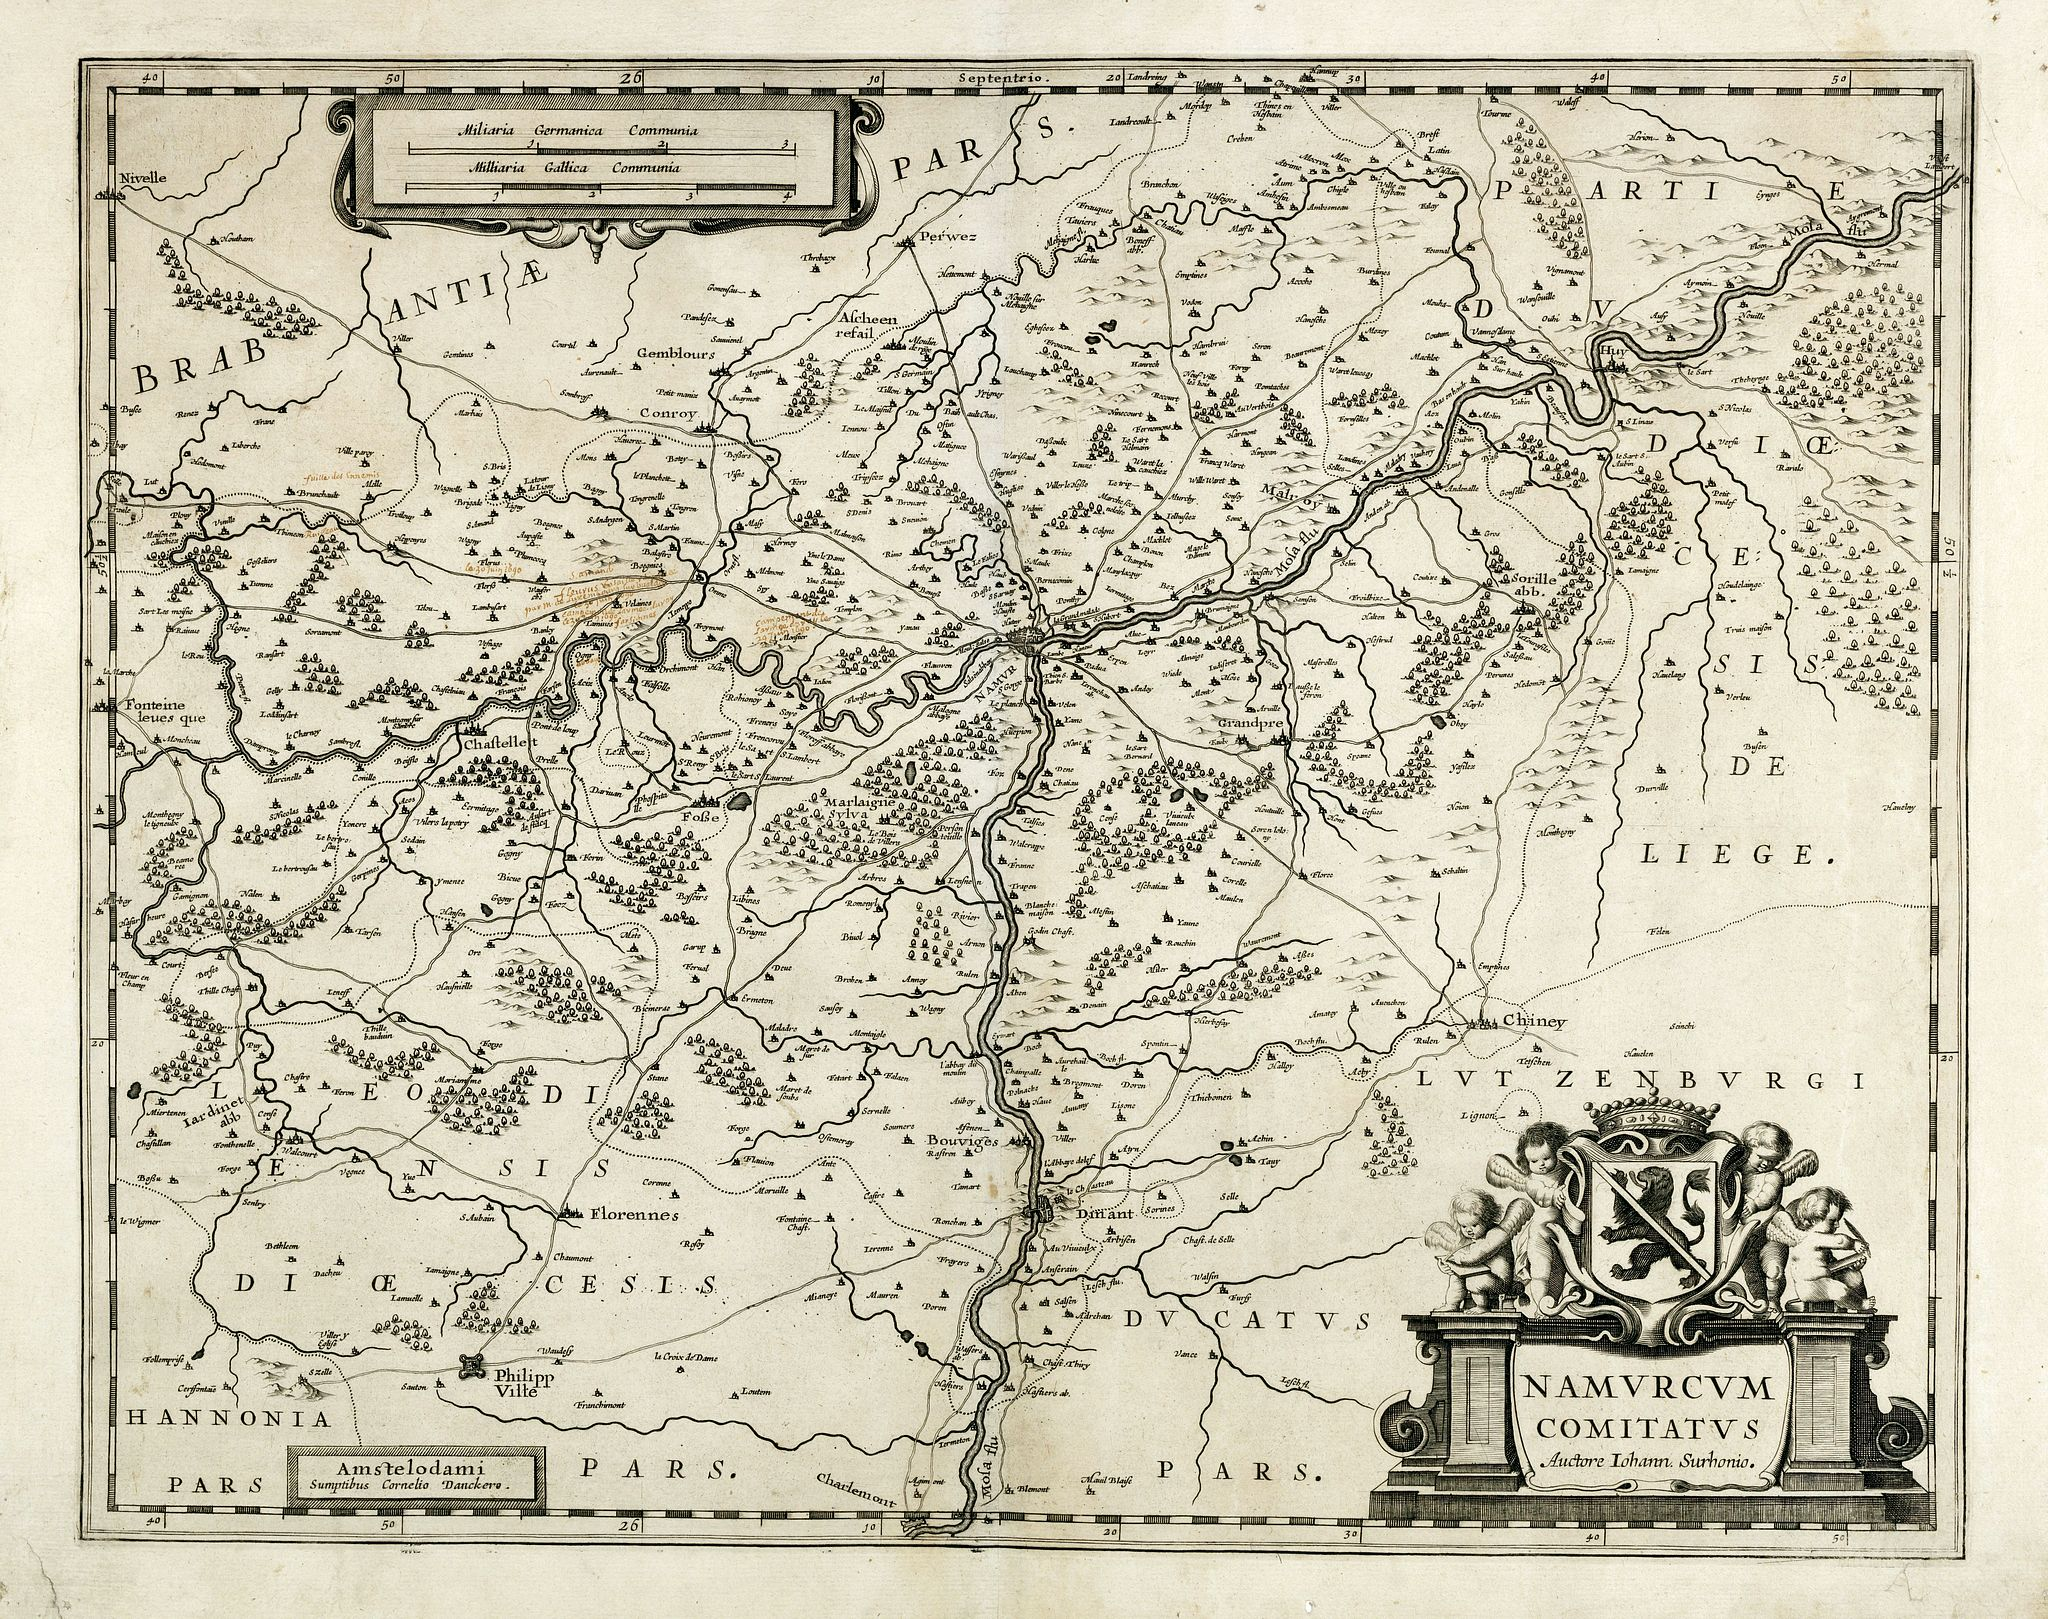 DANCKERTS, C.,  Namurcum comitatus., antique map, old maps